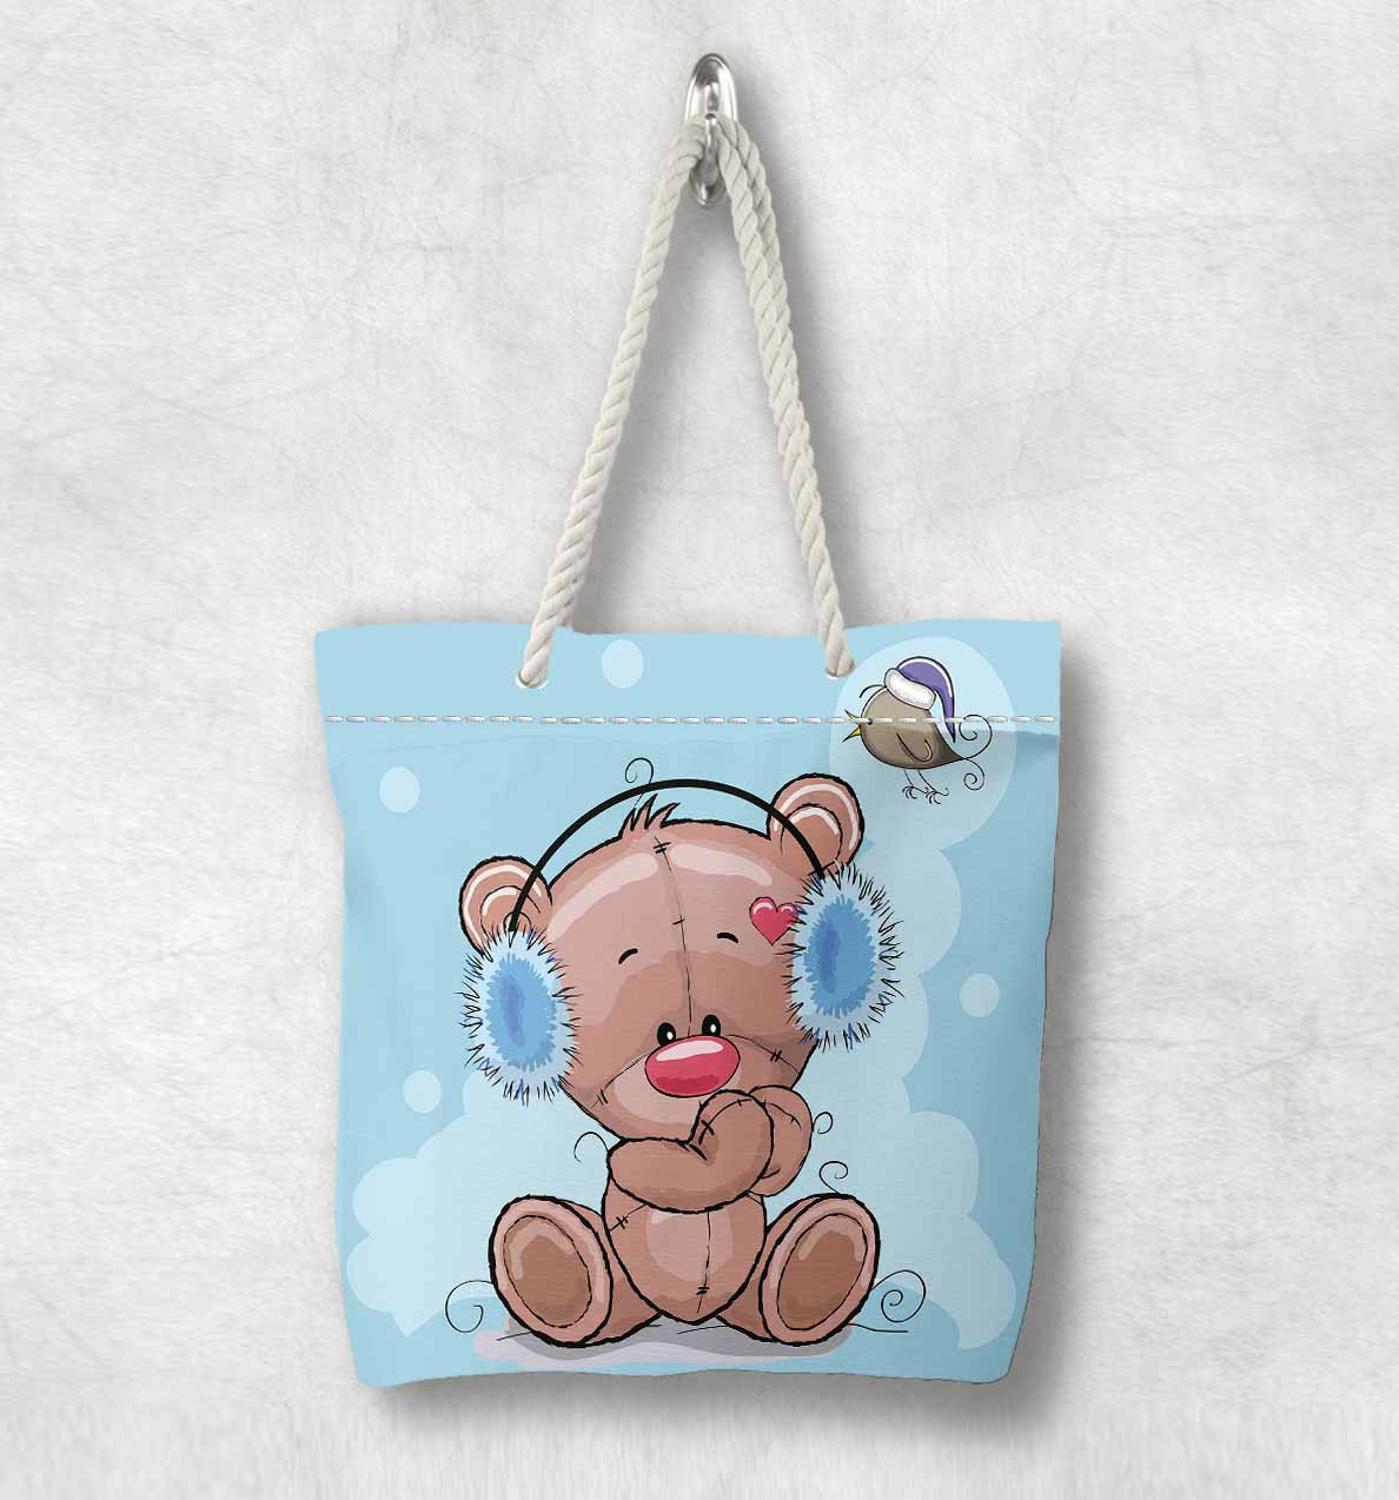 Else Blue Floor Brown Bears Butterfly White Rope Handle Canvas Bag  Cartoon Print Zippered Tote Bag Shoulder Bag